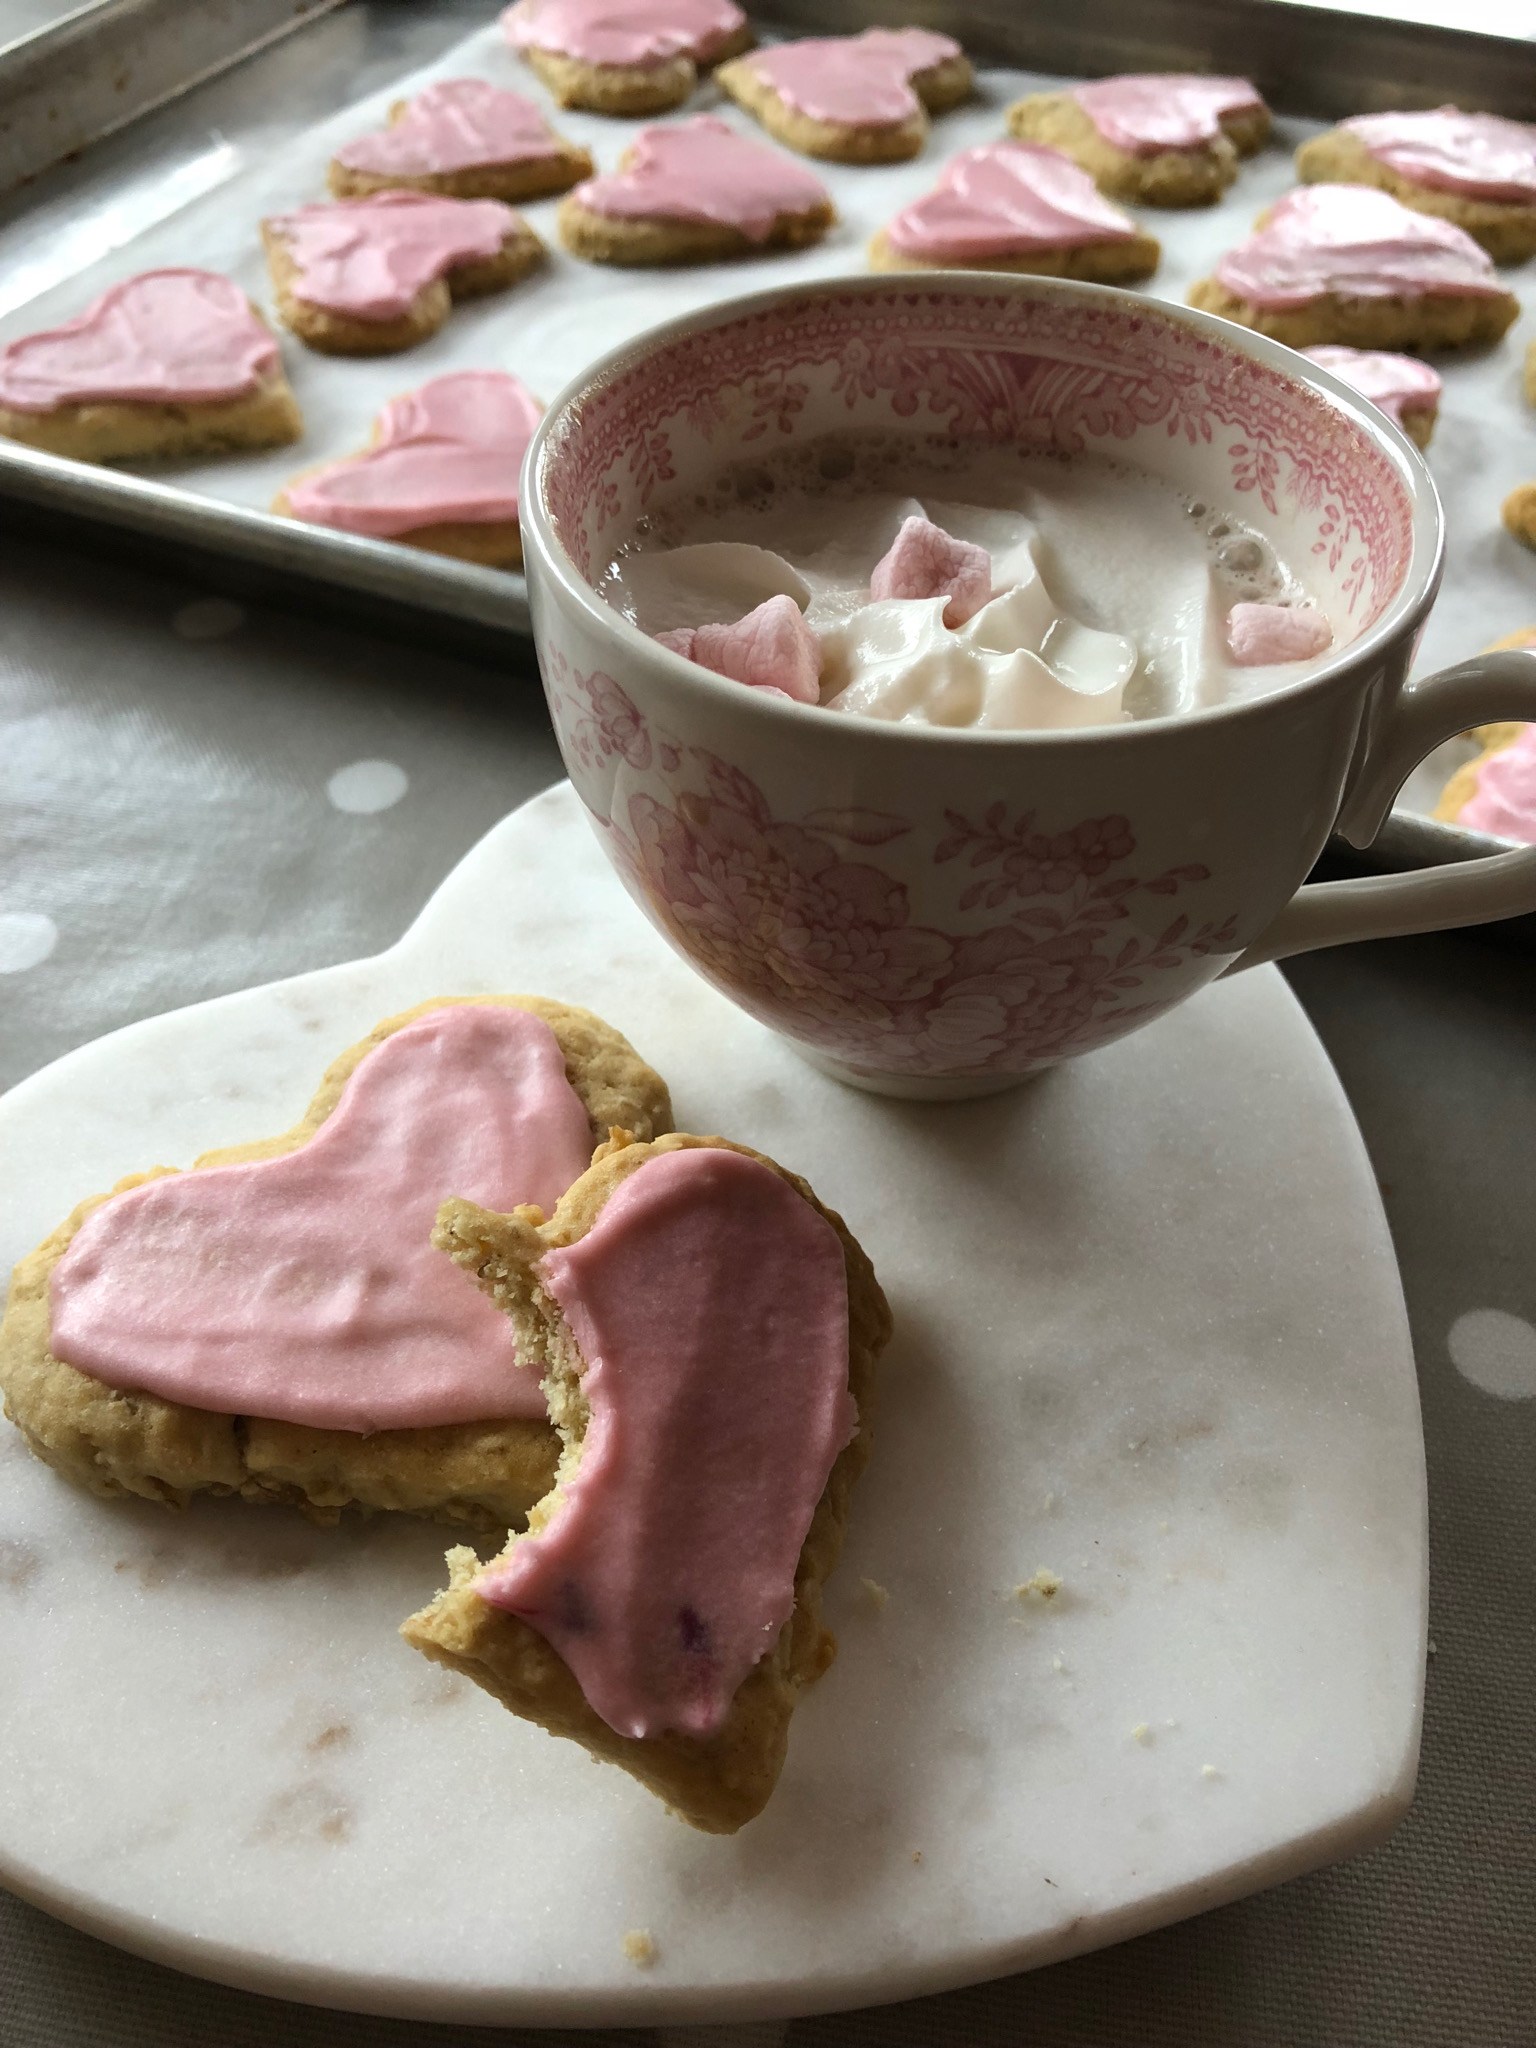 Lisa's Valentine's Day Cookies - 1 1/3 cup soft butter2 cups sugar2 eggs2 tsp. vanilla1/2 cup water4 1/2 cups flour1 tsp. salt1 tsp. soda3 cups oatsBeat butter and sugar until fluffy. Add eggs and vanilla and water.Stir together the flour, salt and soda. Add into butter moisture and blend well.Stir in oats.. Chill 1 hour.Pre-heat oven to 350. Roll out dough with flour and cut into hearts. Bake on un-greased cookies sheets for 12 minutes.When cool, frost with pink and white butter cream frosting.